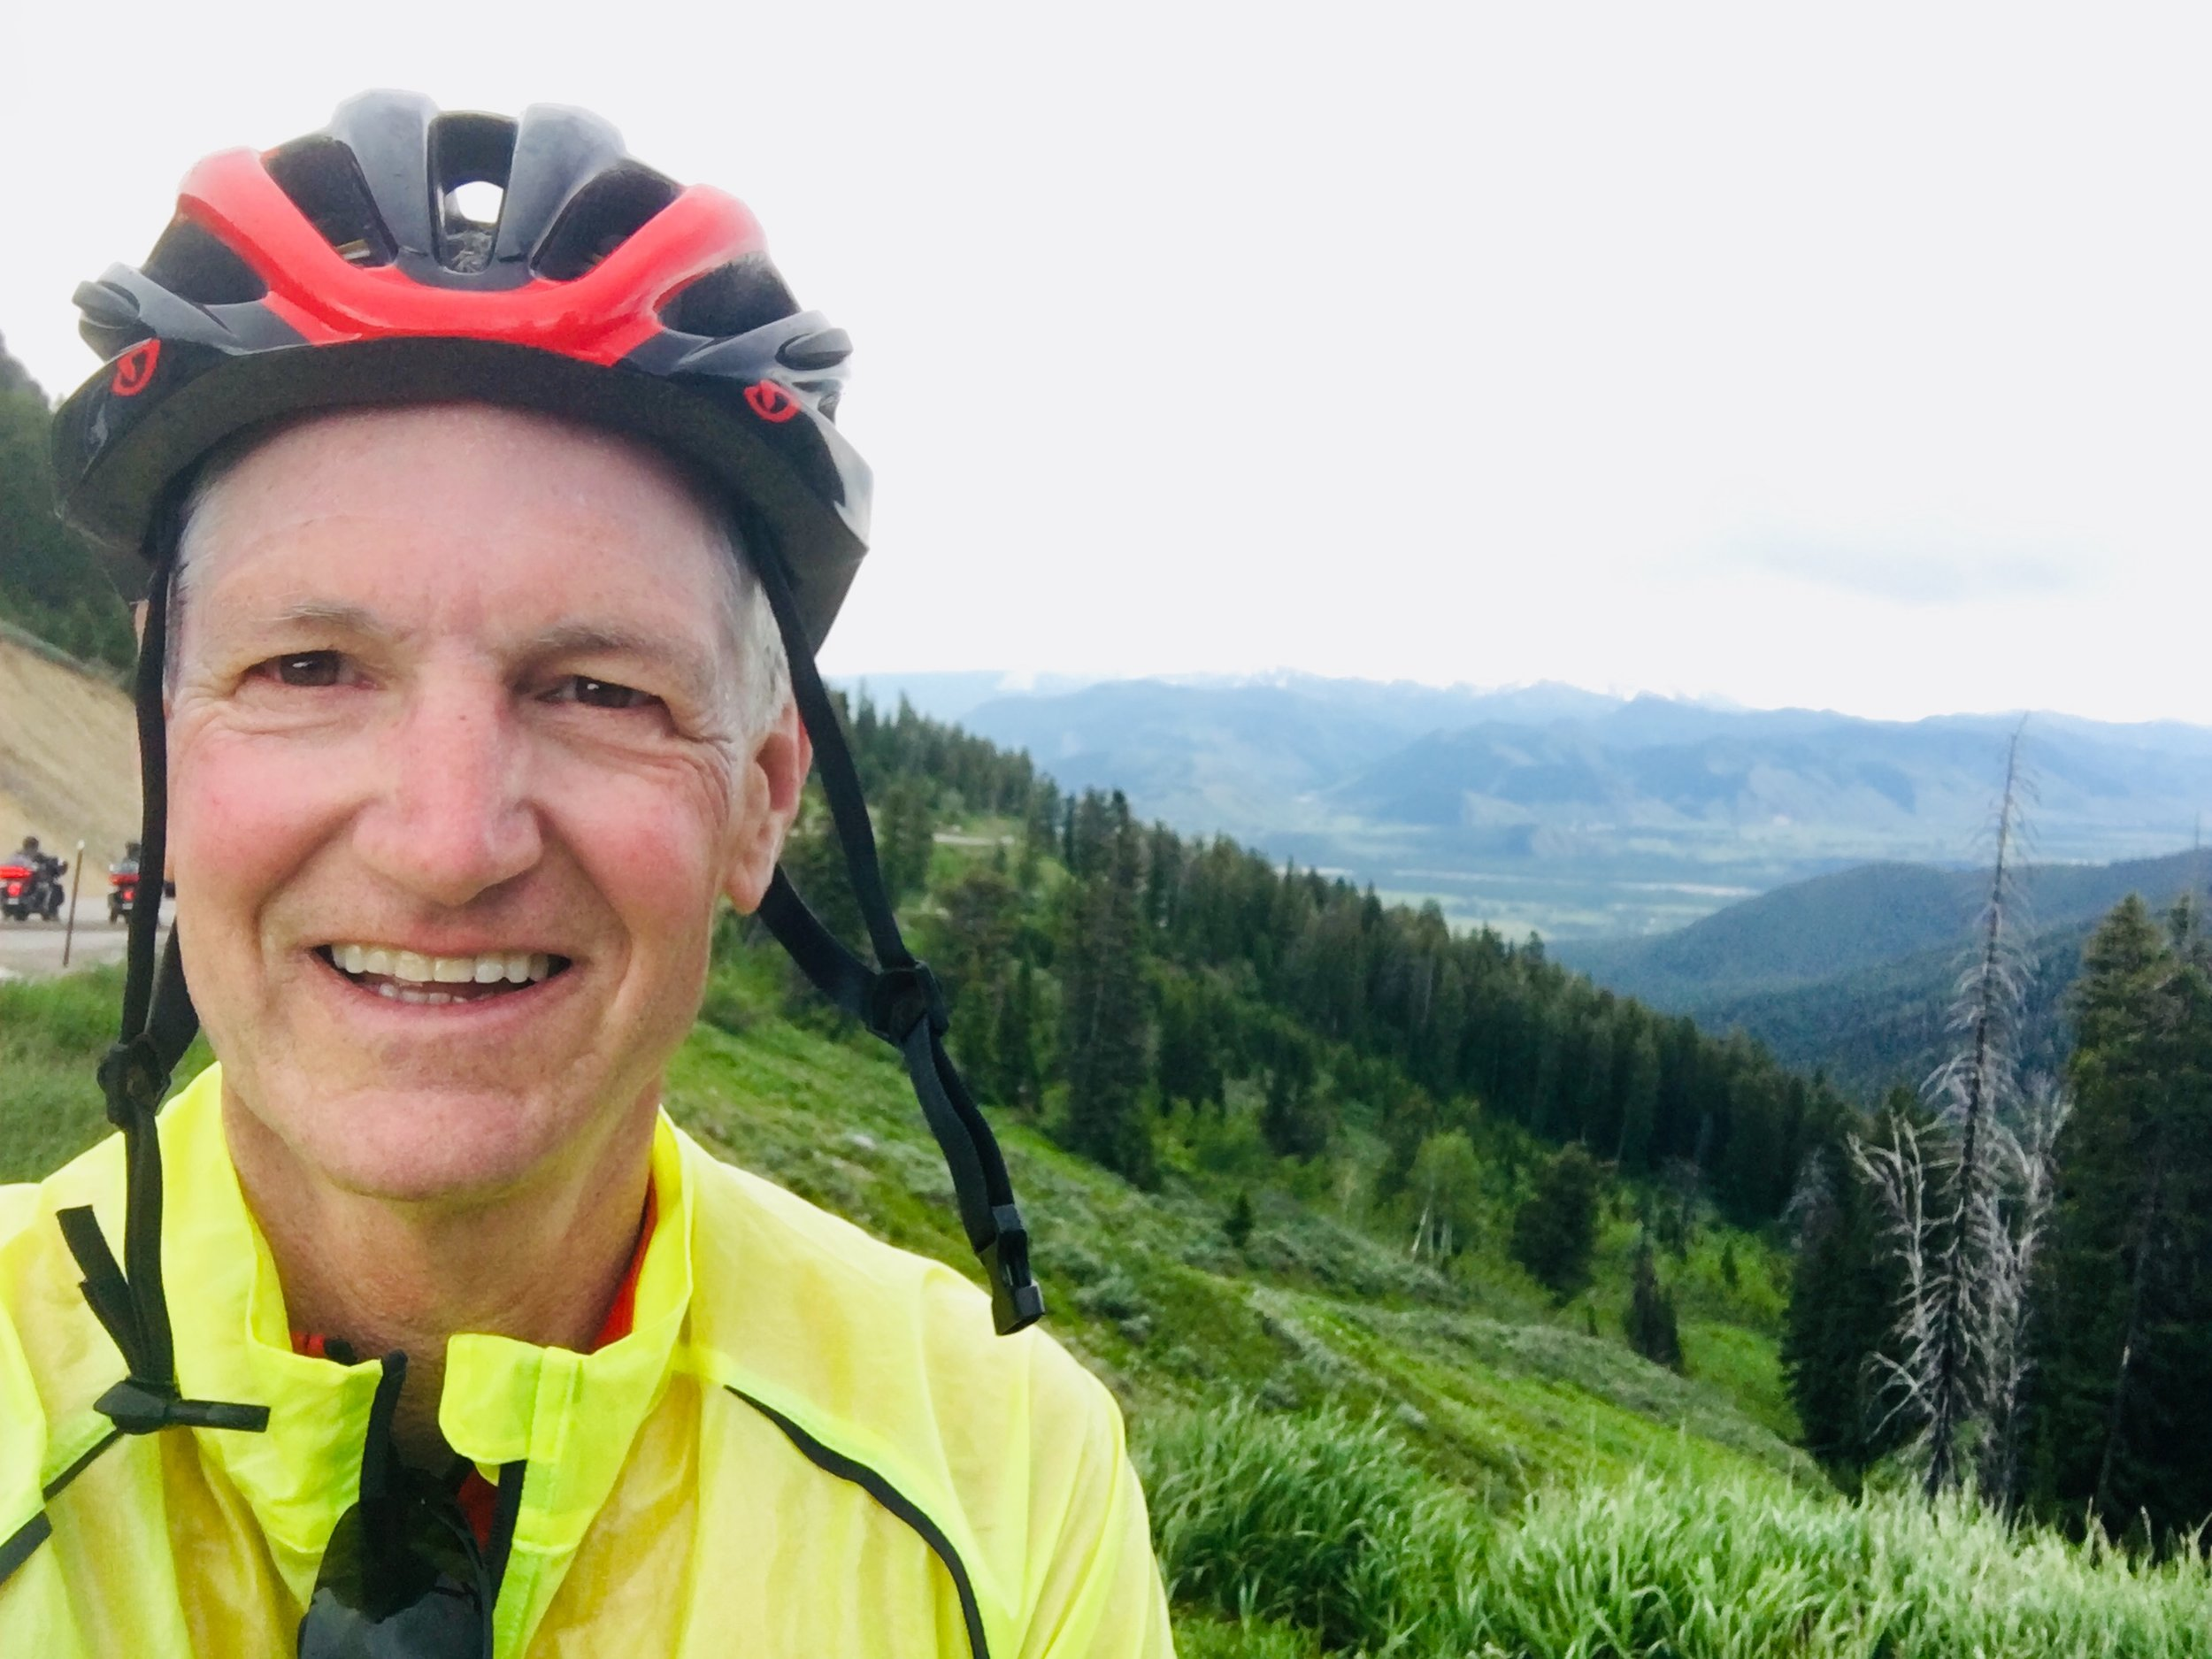 - Selfie from the top of Teton Pass overlooking Jackson, with mountains in the distance.